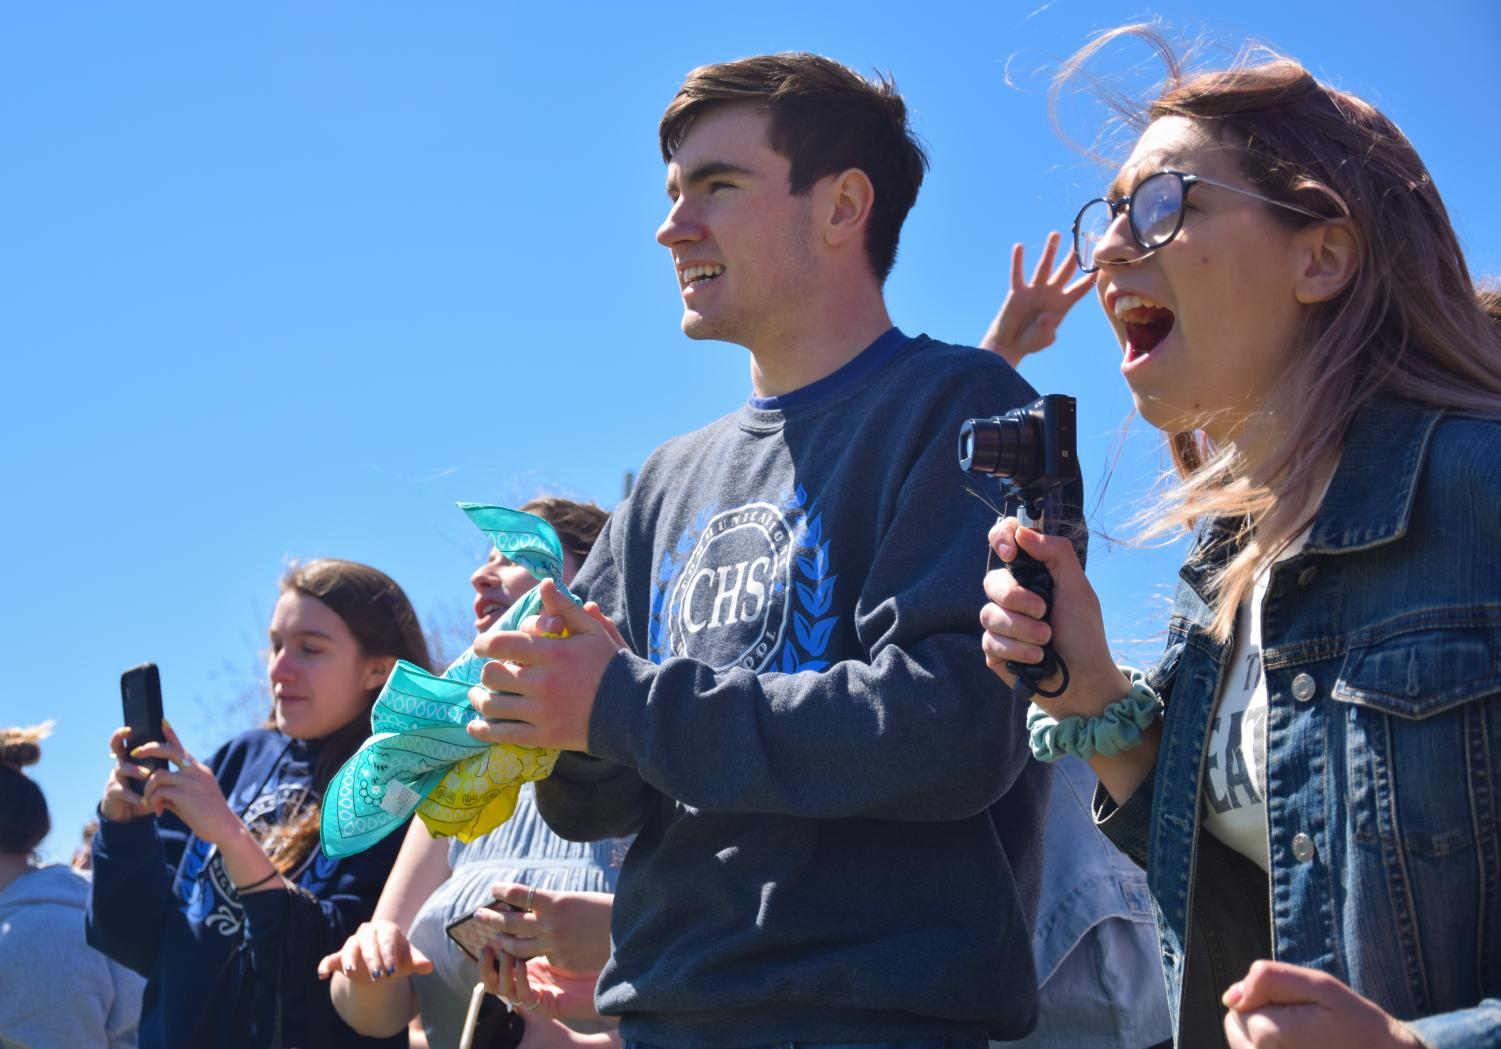 Seniors Connor Martin of Spring Lake and Kate Dickenson of Spring Lake Heights cheer on their classmates in the Spring Relay.